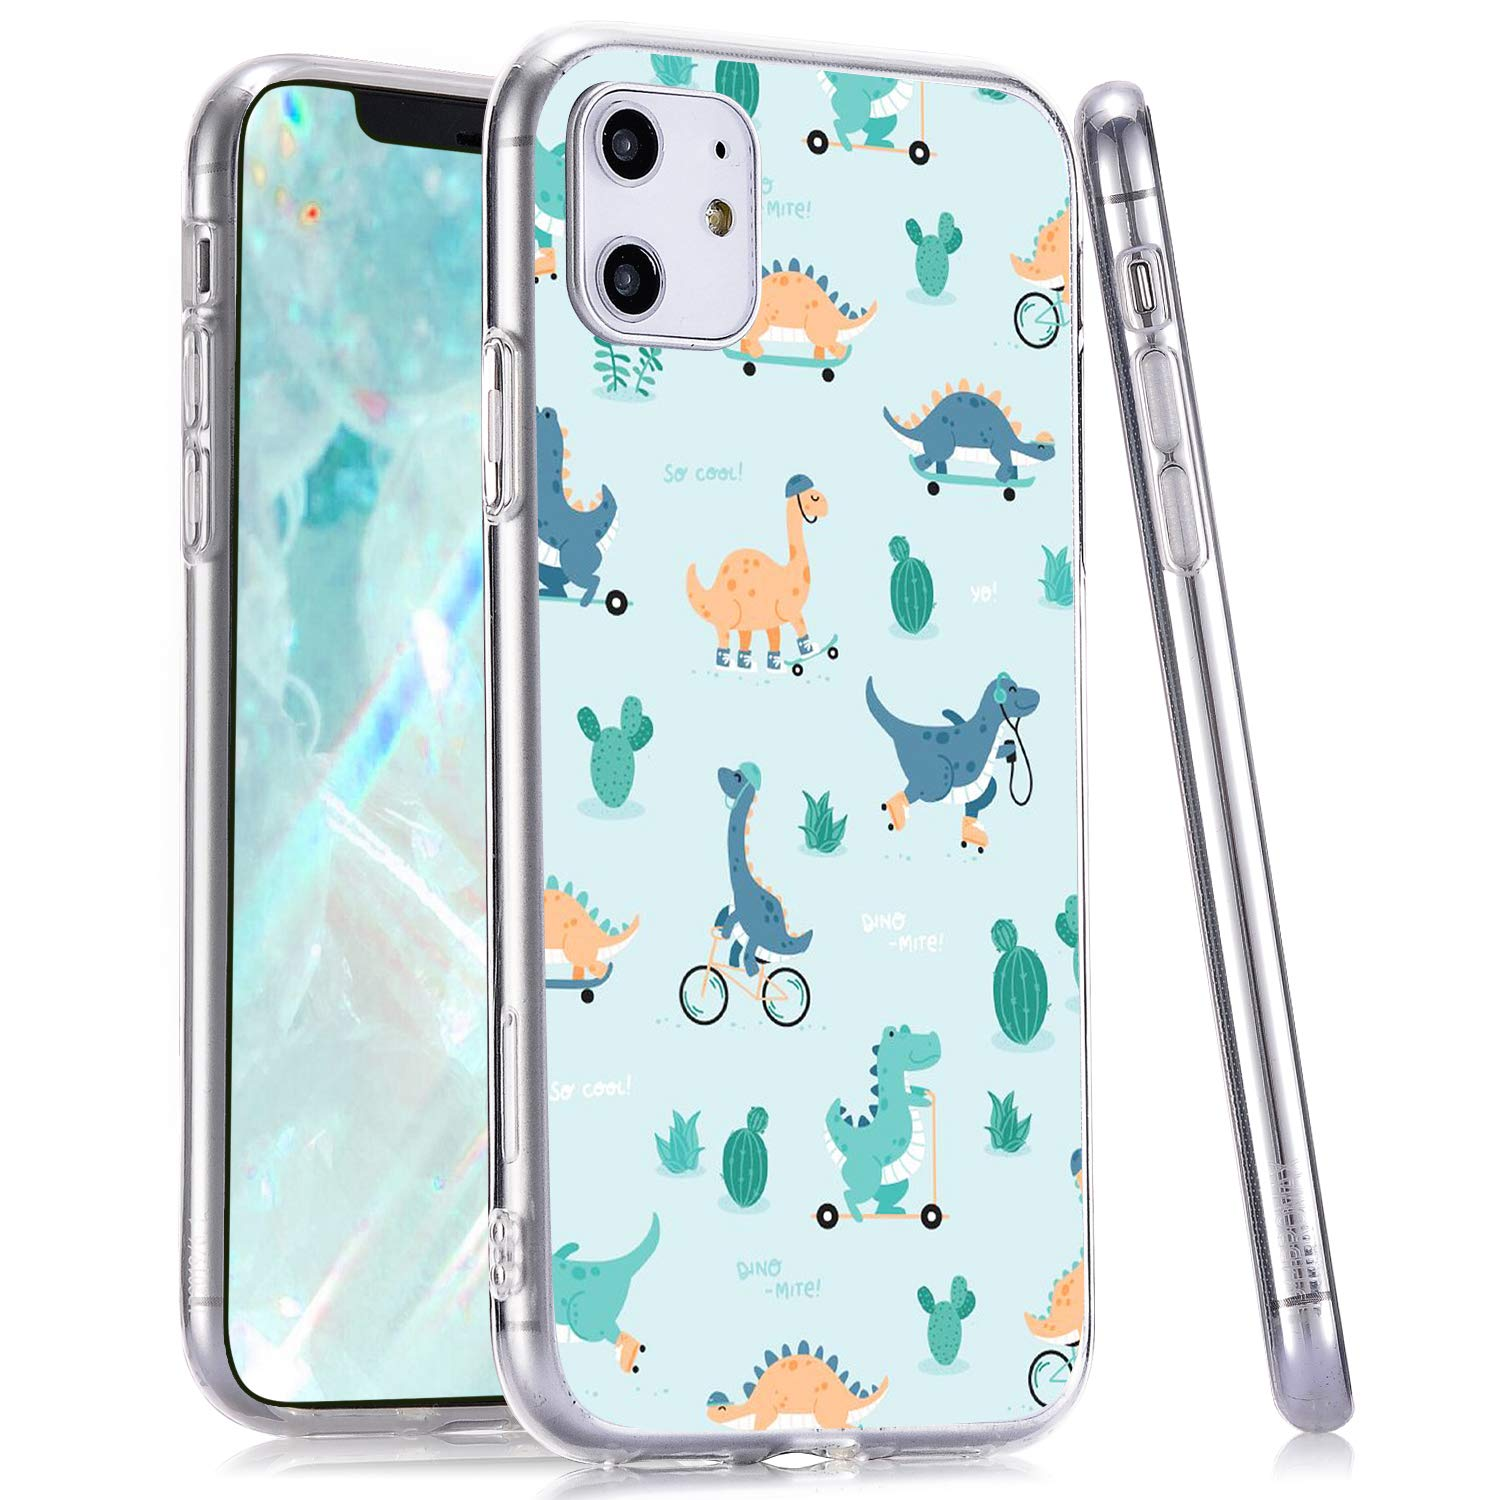 LuGeKe Dinosaur Phone Case for iPhone11,Cartoon Patterned Dino Design Case Cover,Soft TPU Cover Flexible Ultra Slim Anti-Stratch Bumper Protective Cute Girly Phonecase(Skating Dinosaur)